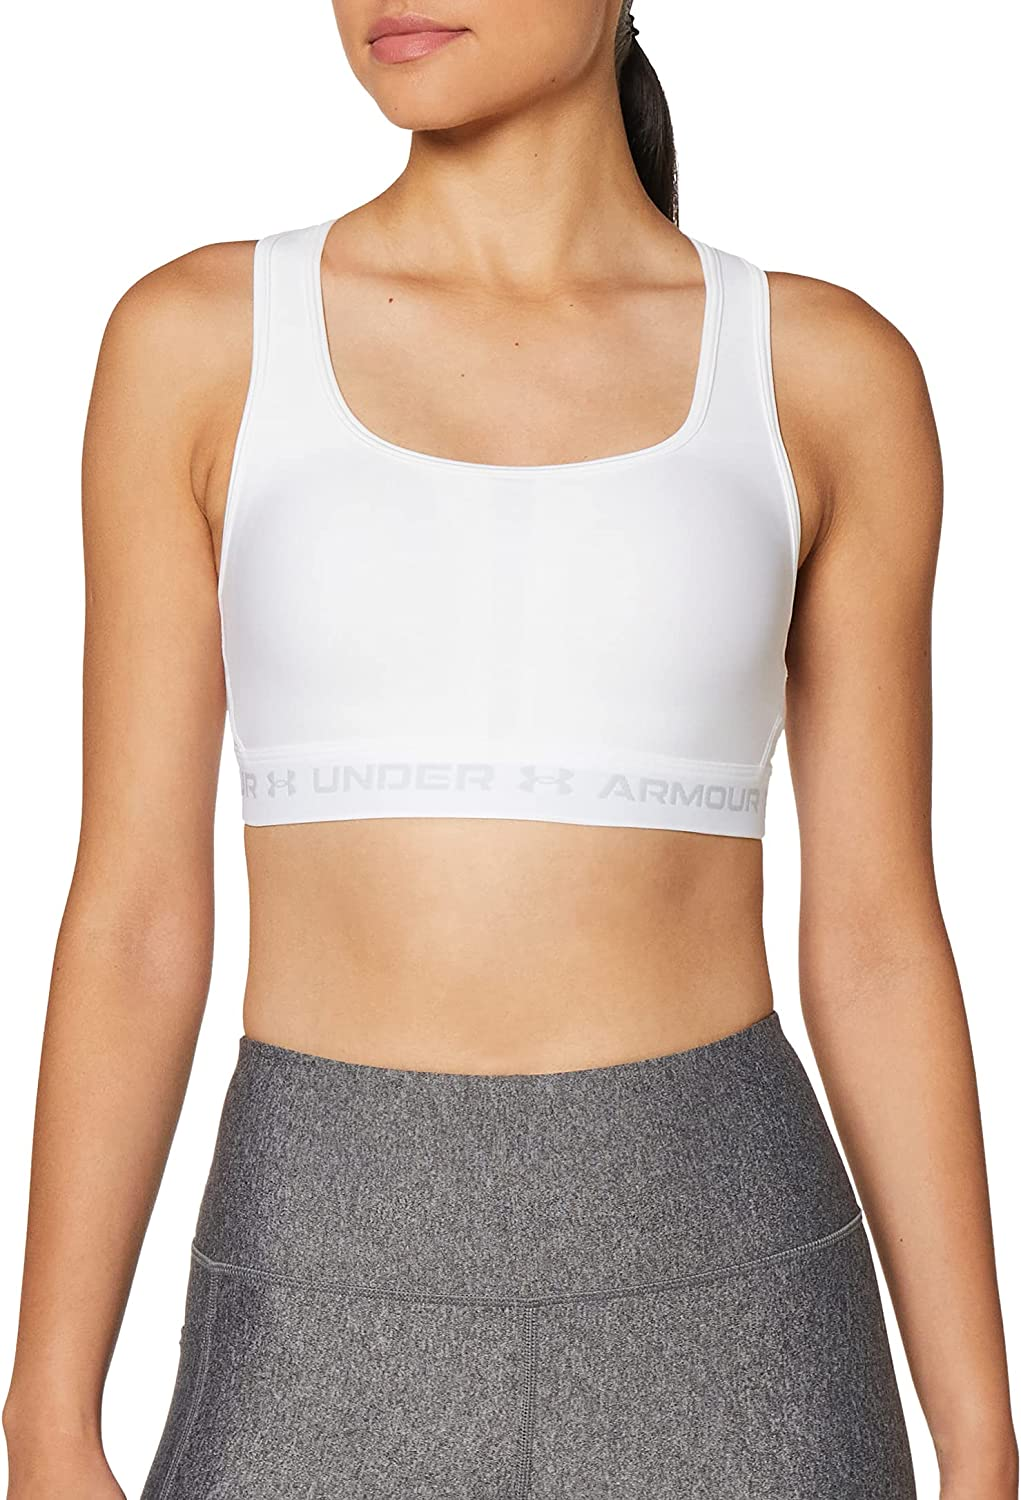 Under Armour Elegant Women's Mid Crossback Bra Selling and selling